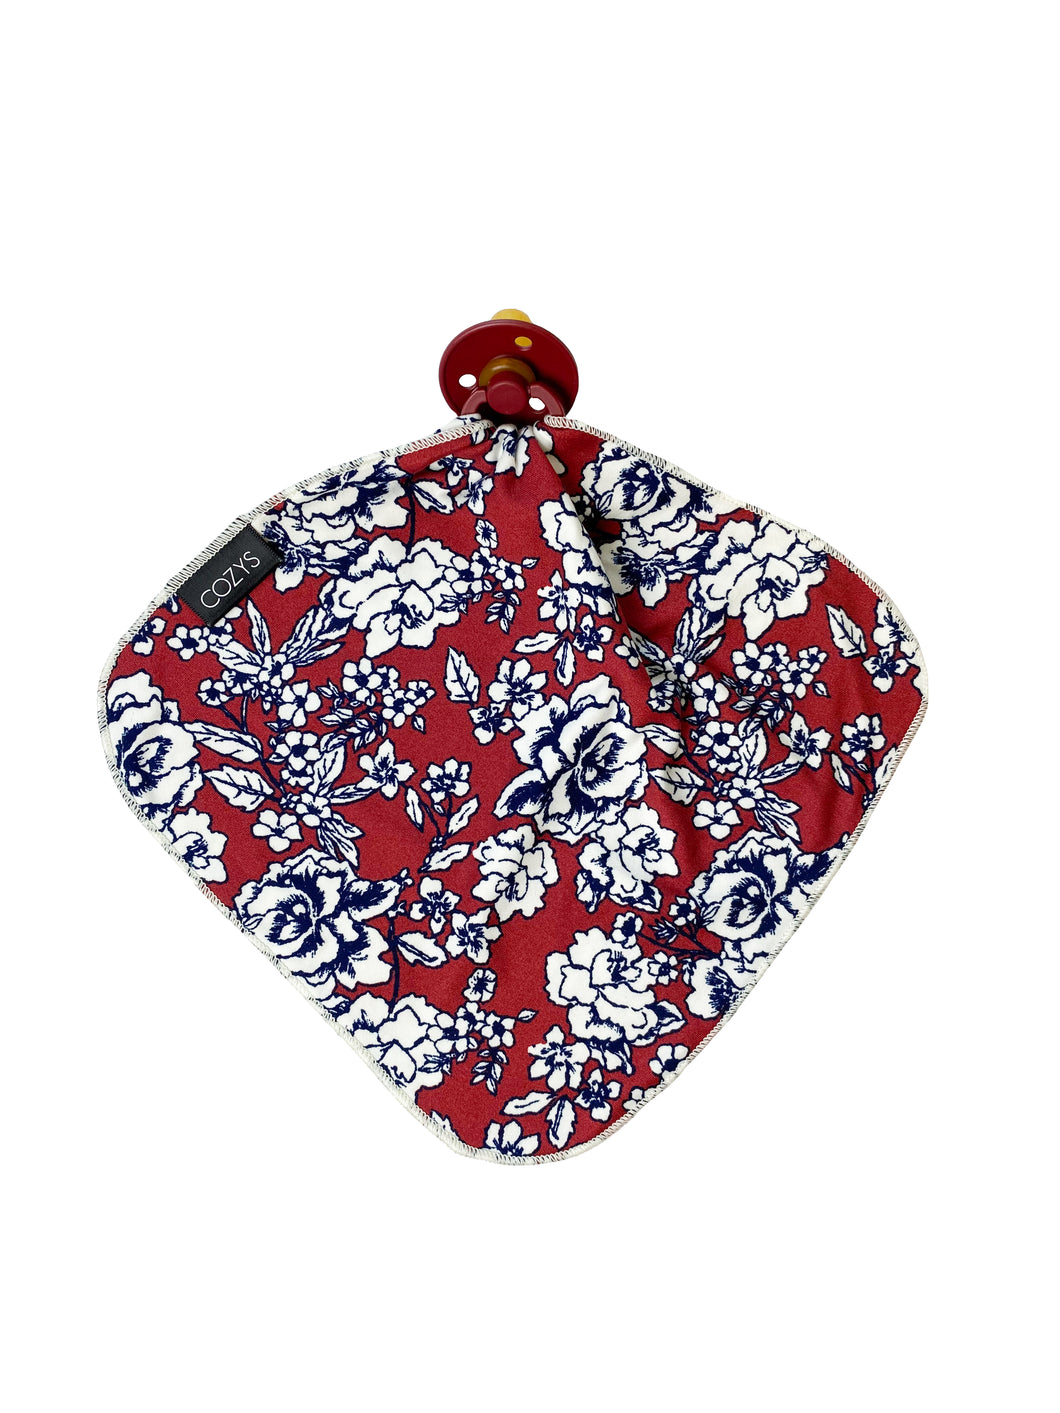 LOVIE - DARK RUST + NAVY FLORAL